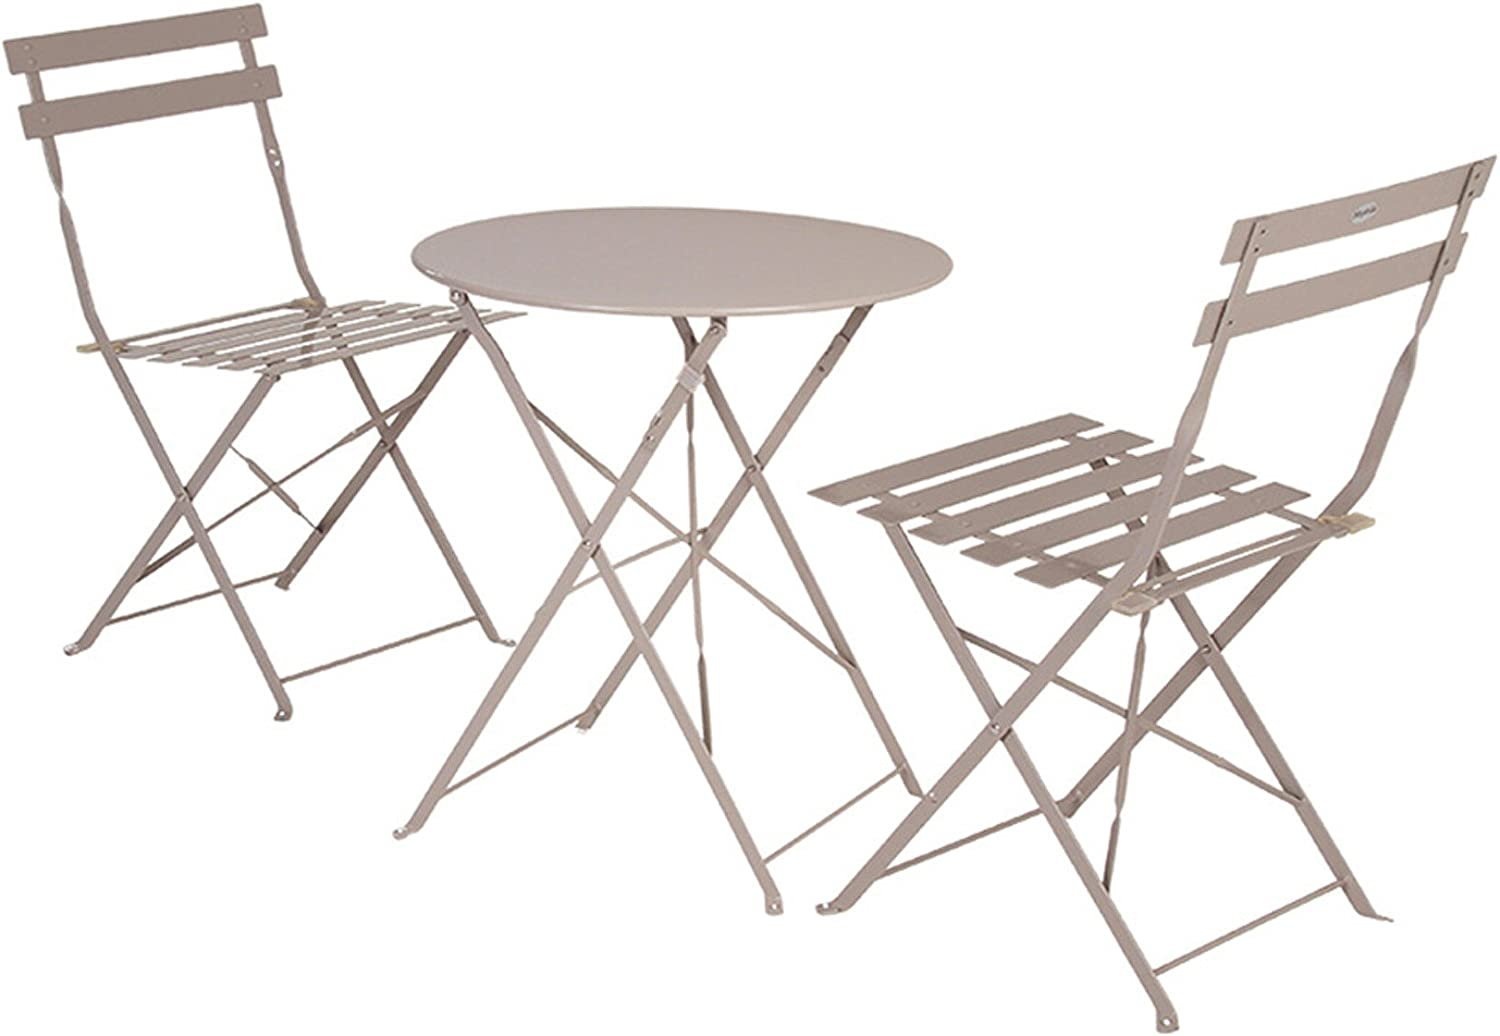 Table Camargue ronde 2 personnes Hesp/éride taupe